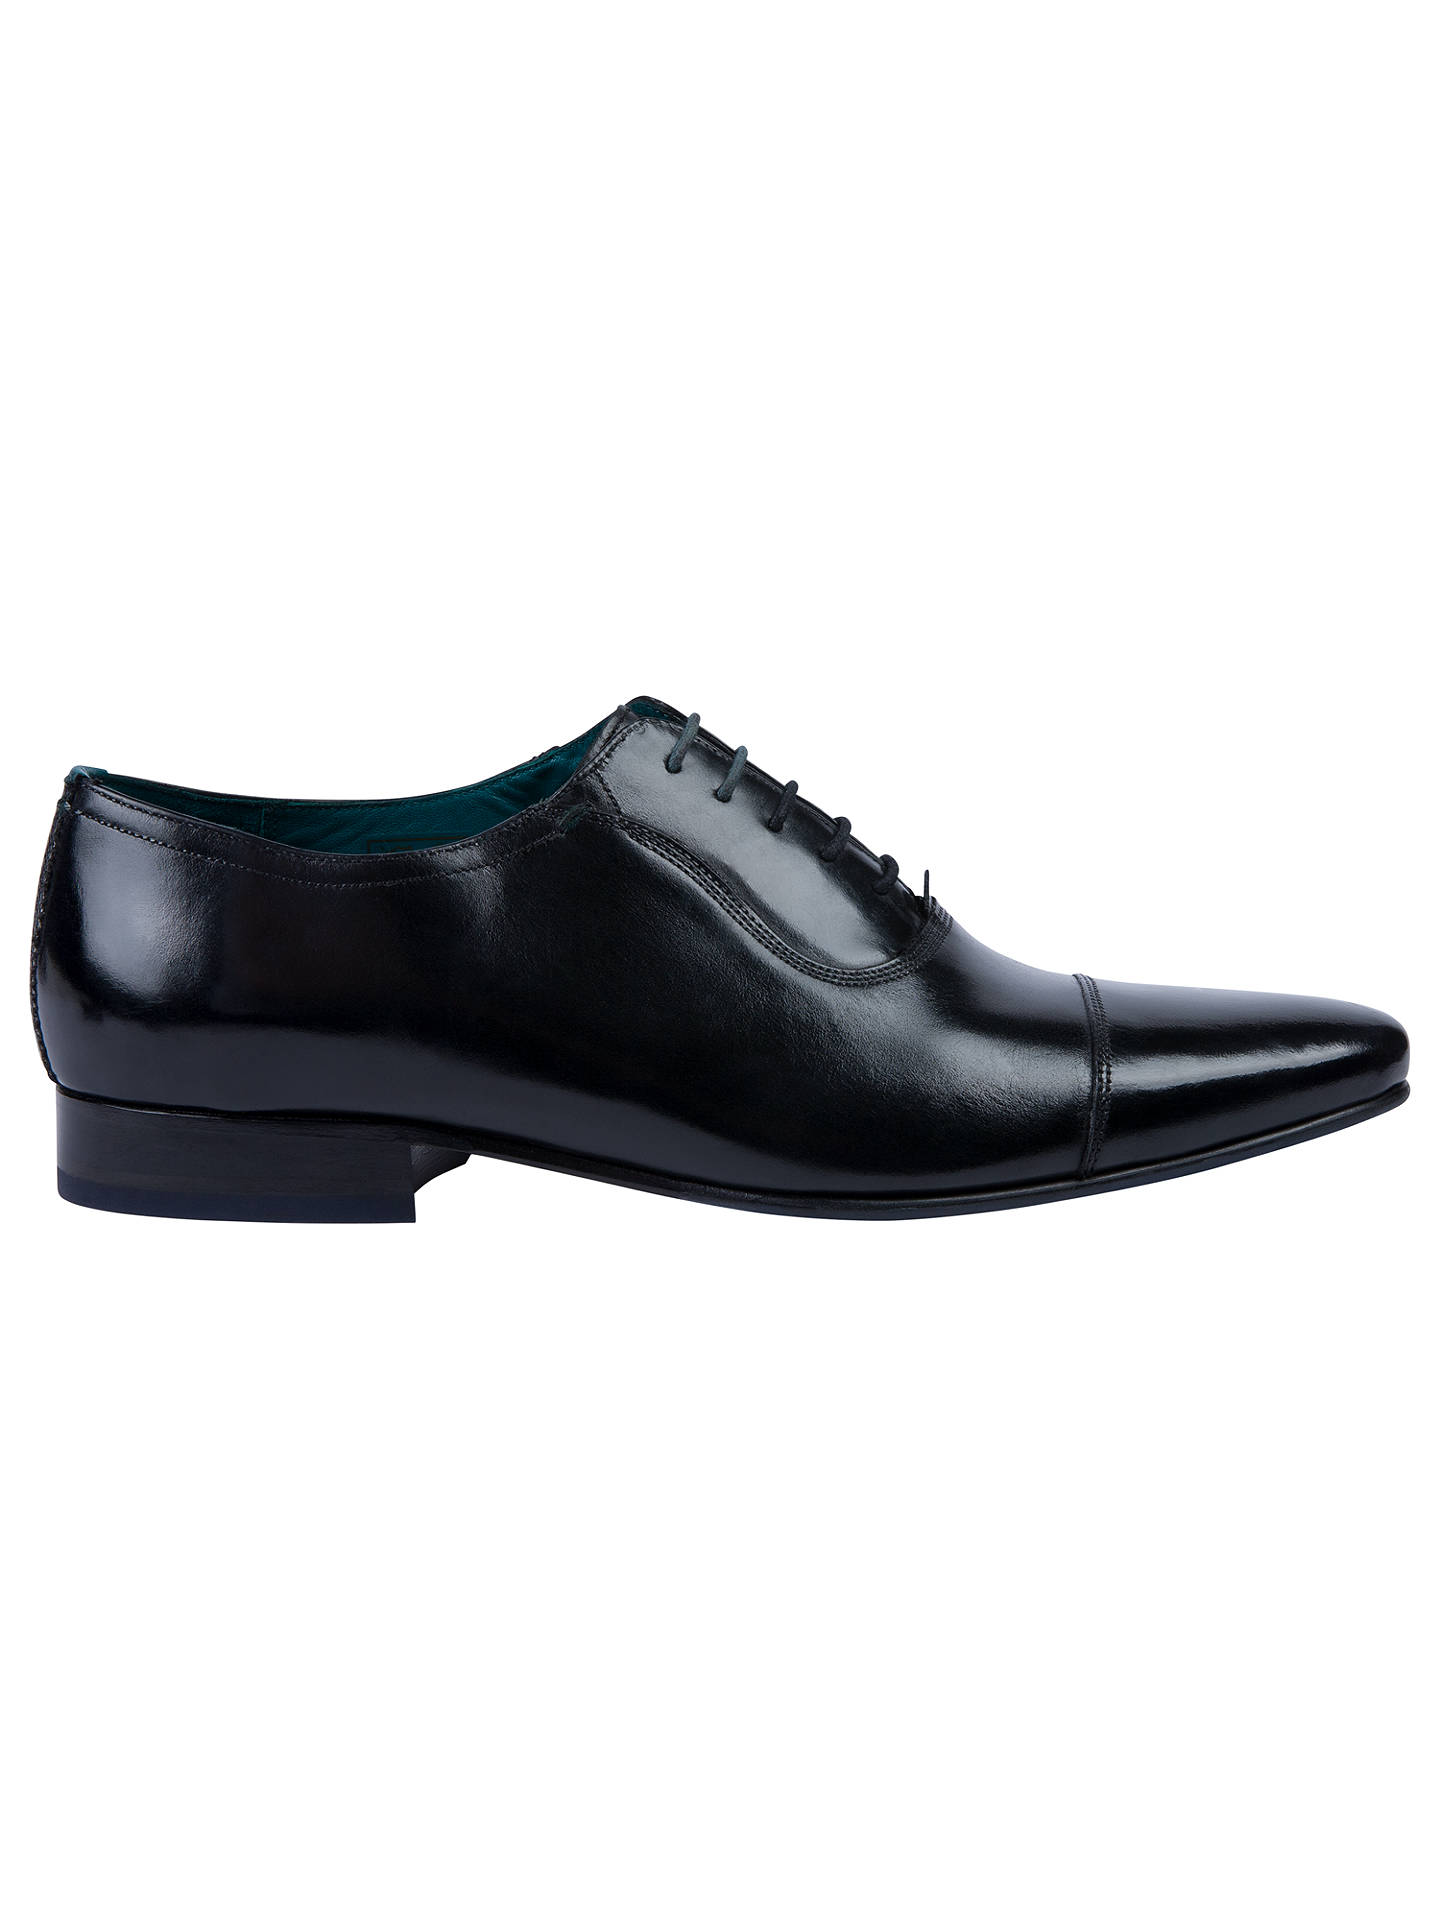 00dffc97785d Ted Baker Karney Pointed Toe Cap Oxford Shoes at John Lewis   Partners